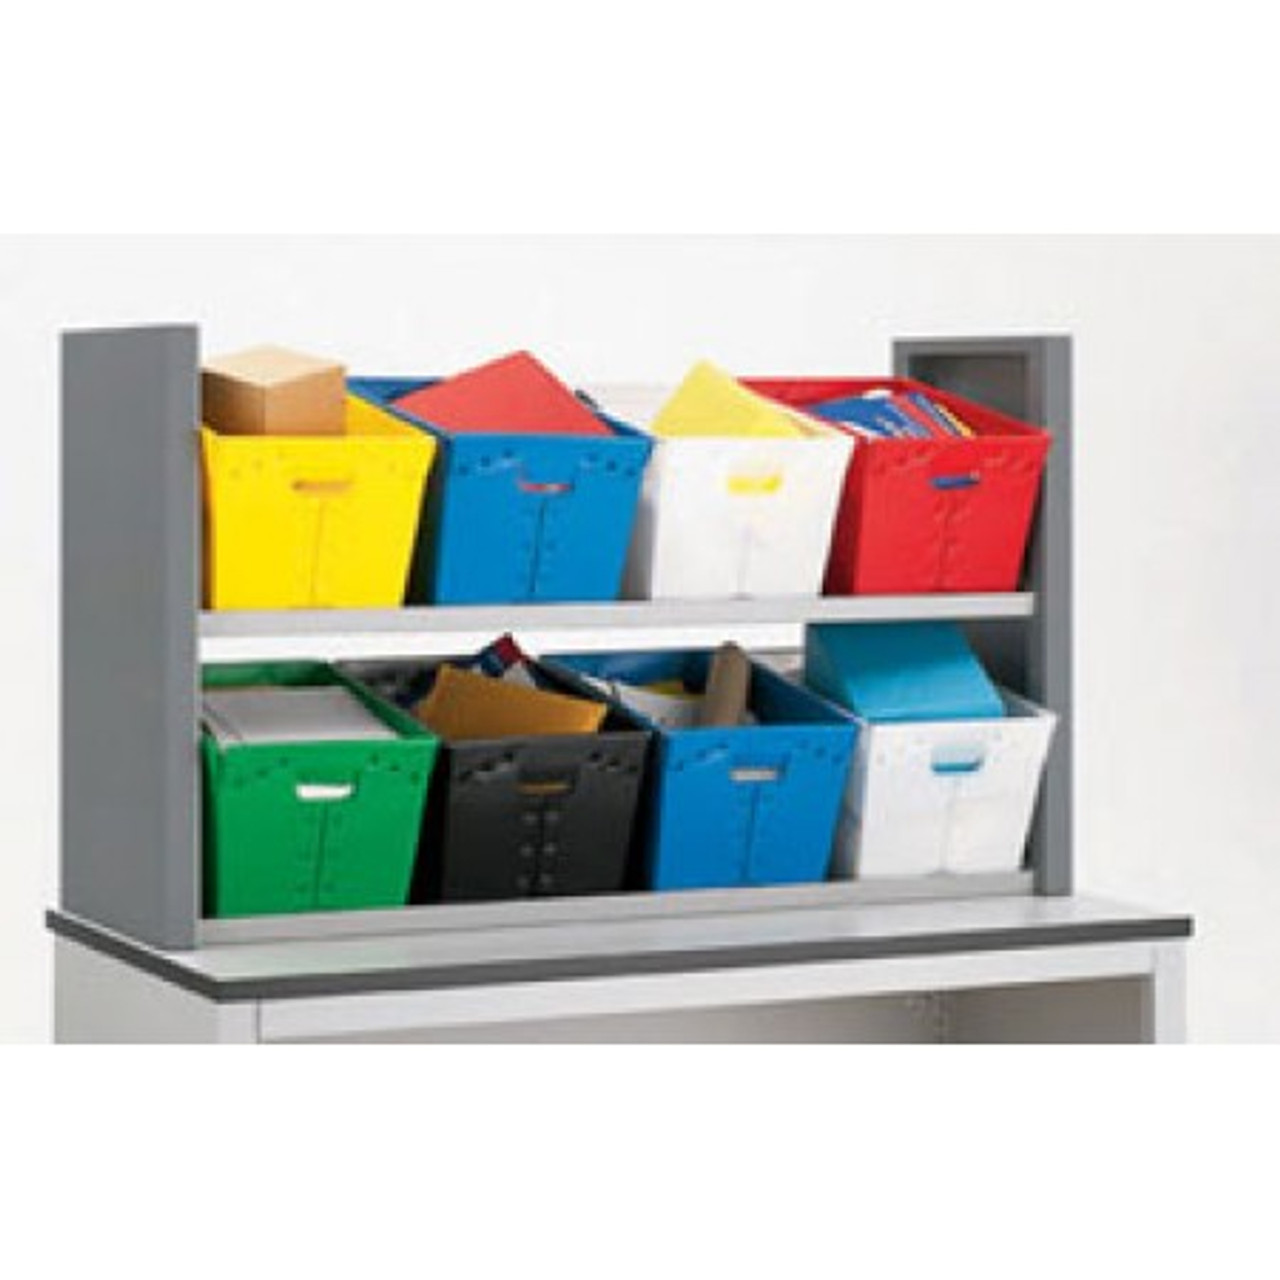 Charnstrom Postal Tote Sorter - Totes See T158